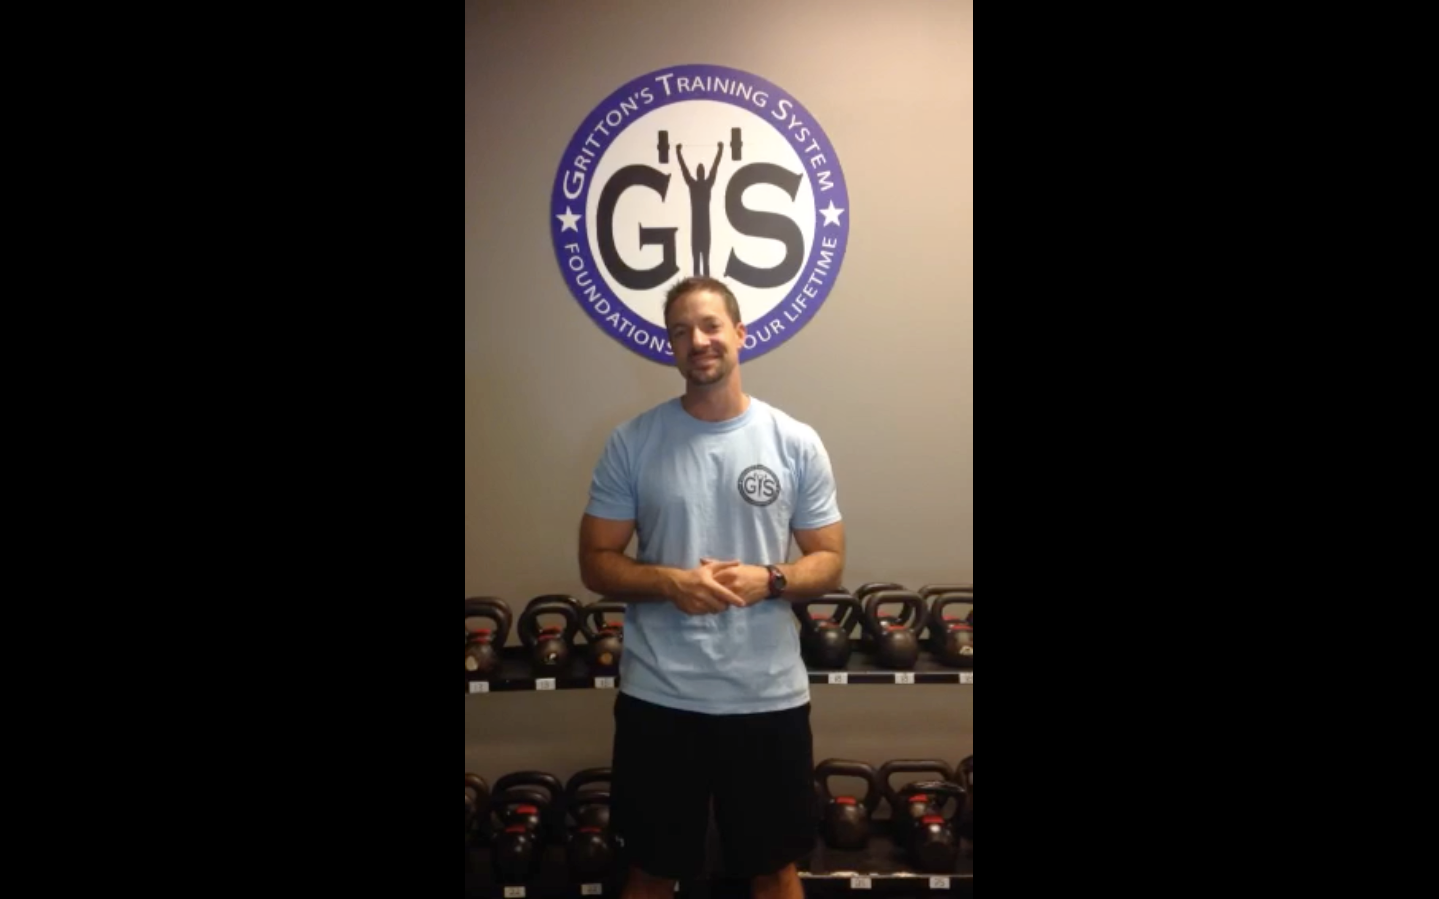 Welcome to GTS from Jeremy Gritton